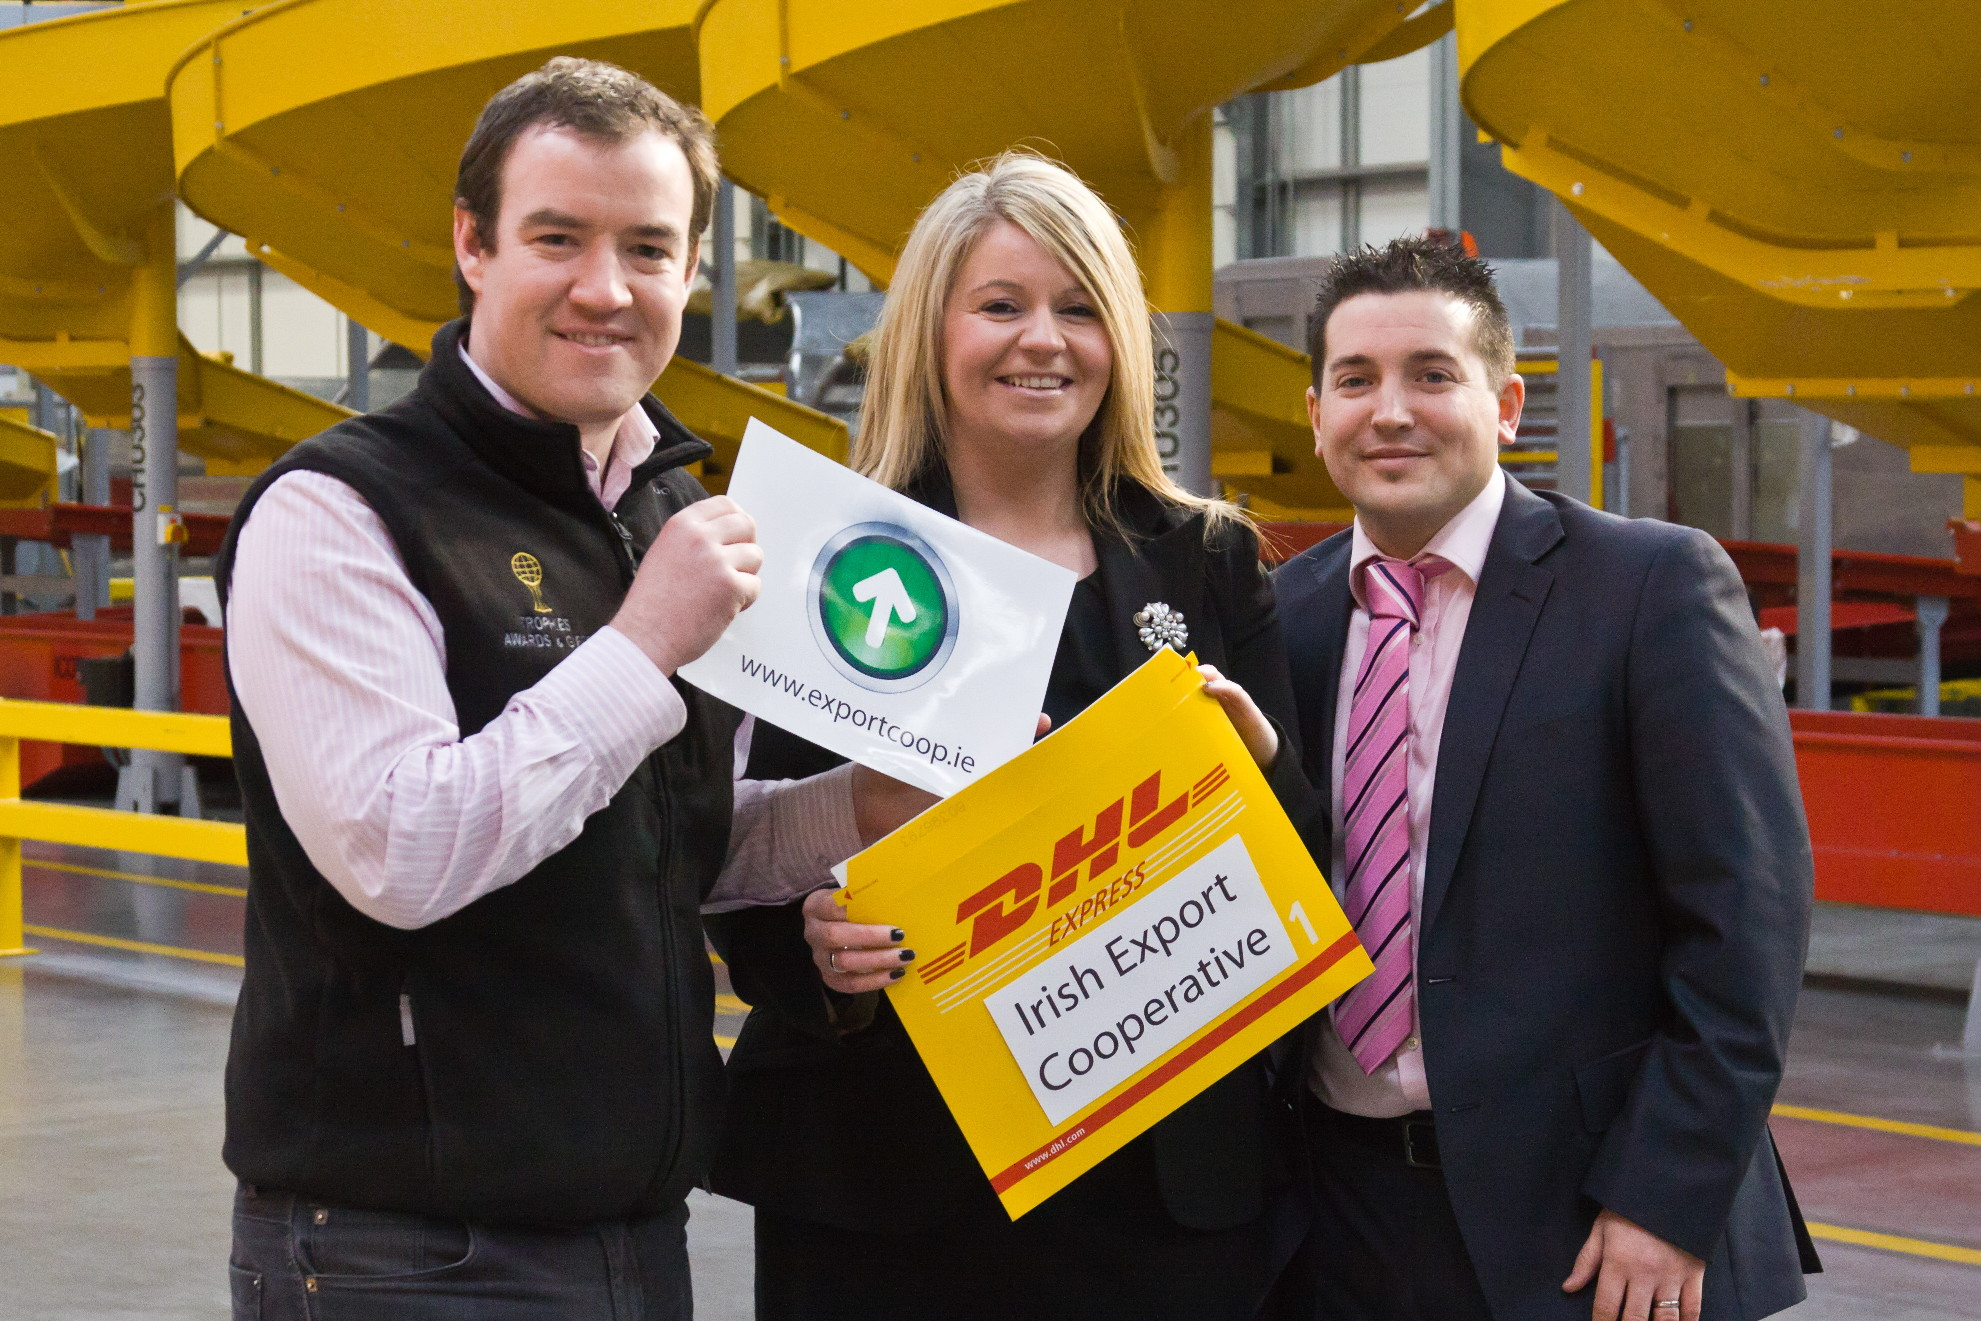 Irish Export Cooperative DHL